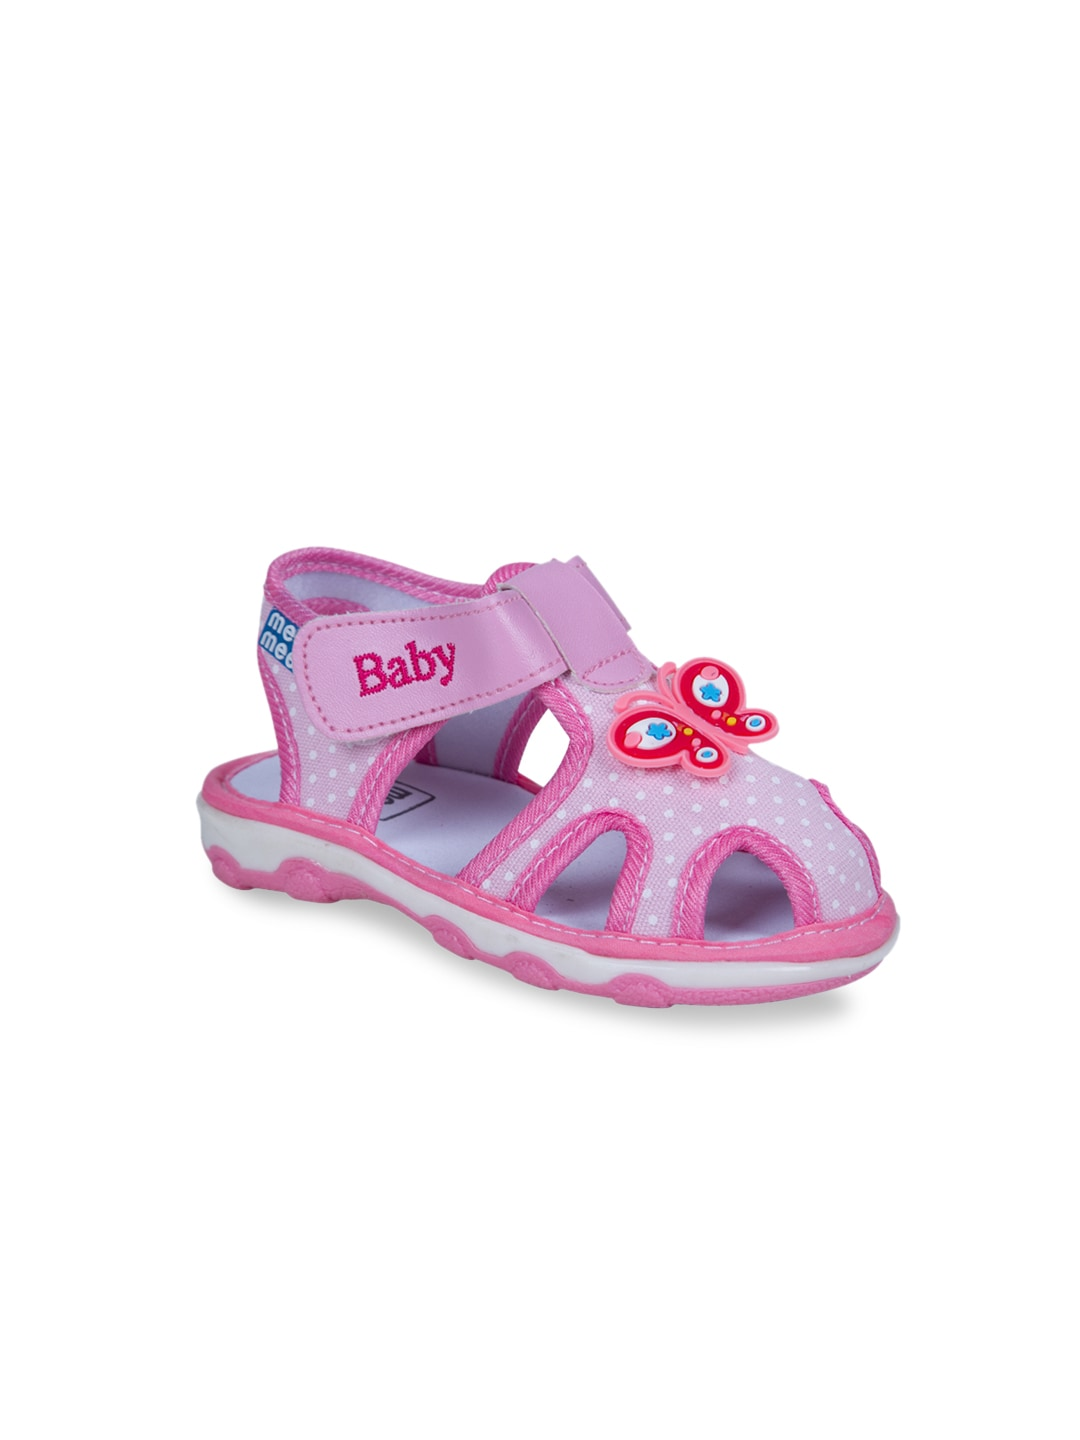 1e9e257693a8 Girls Sandals - Buy Sandal for Girls Online In India